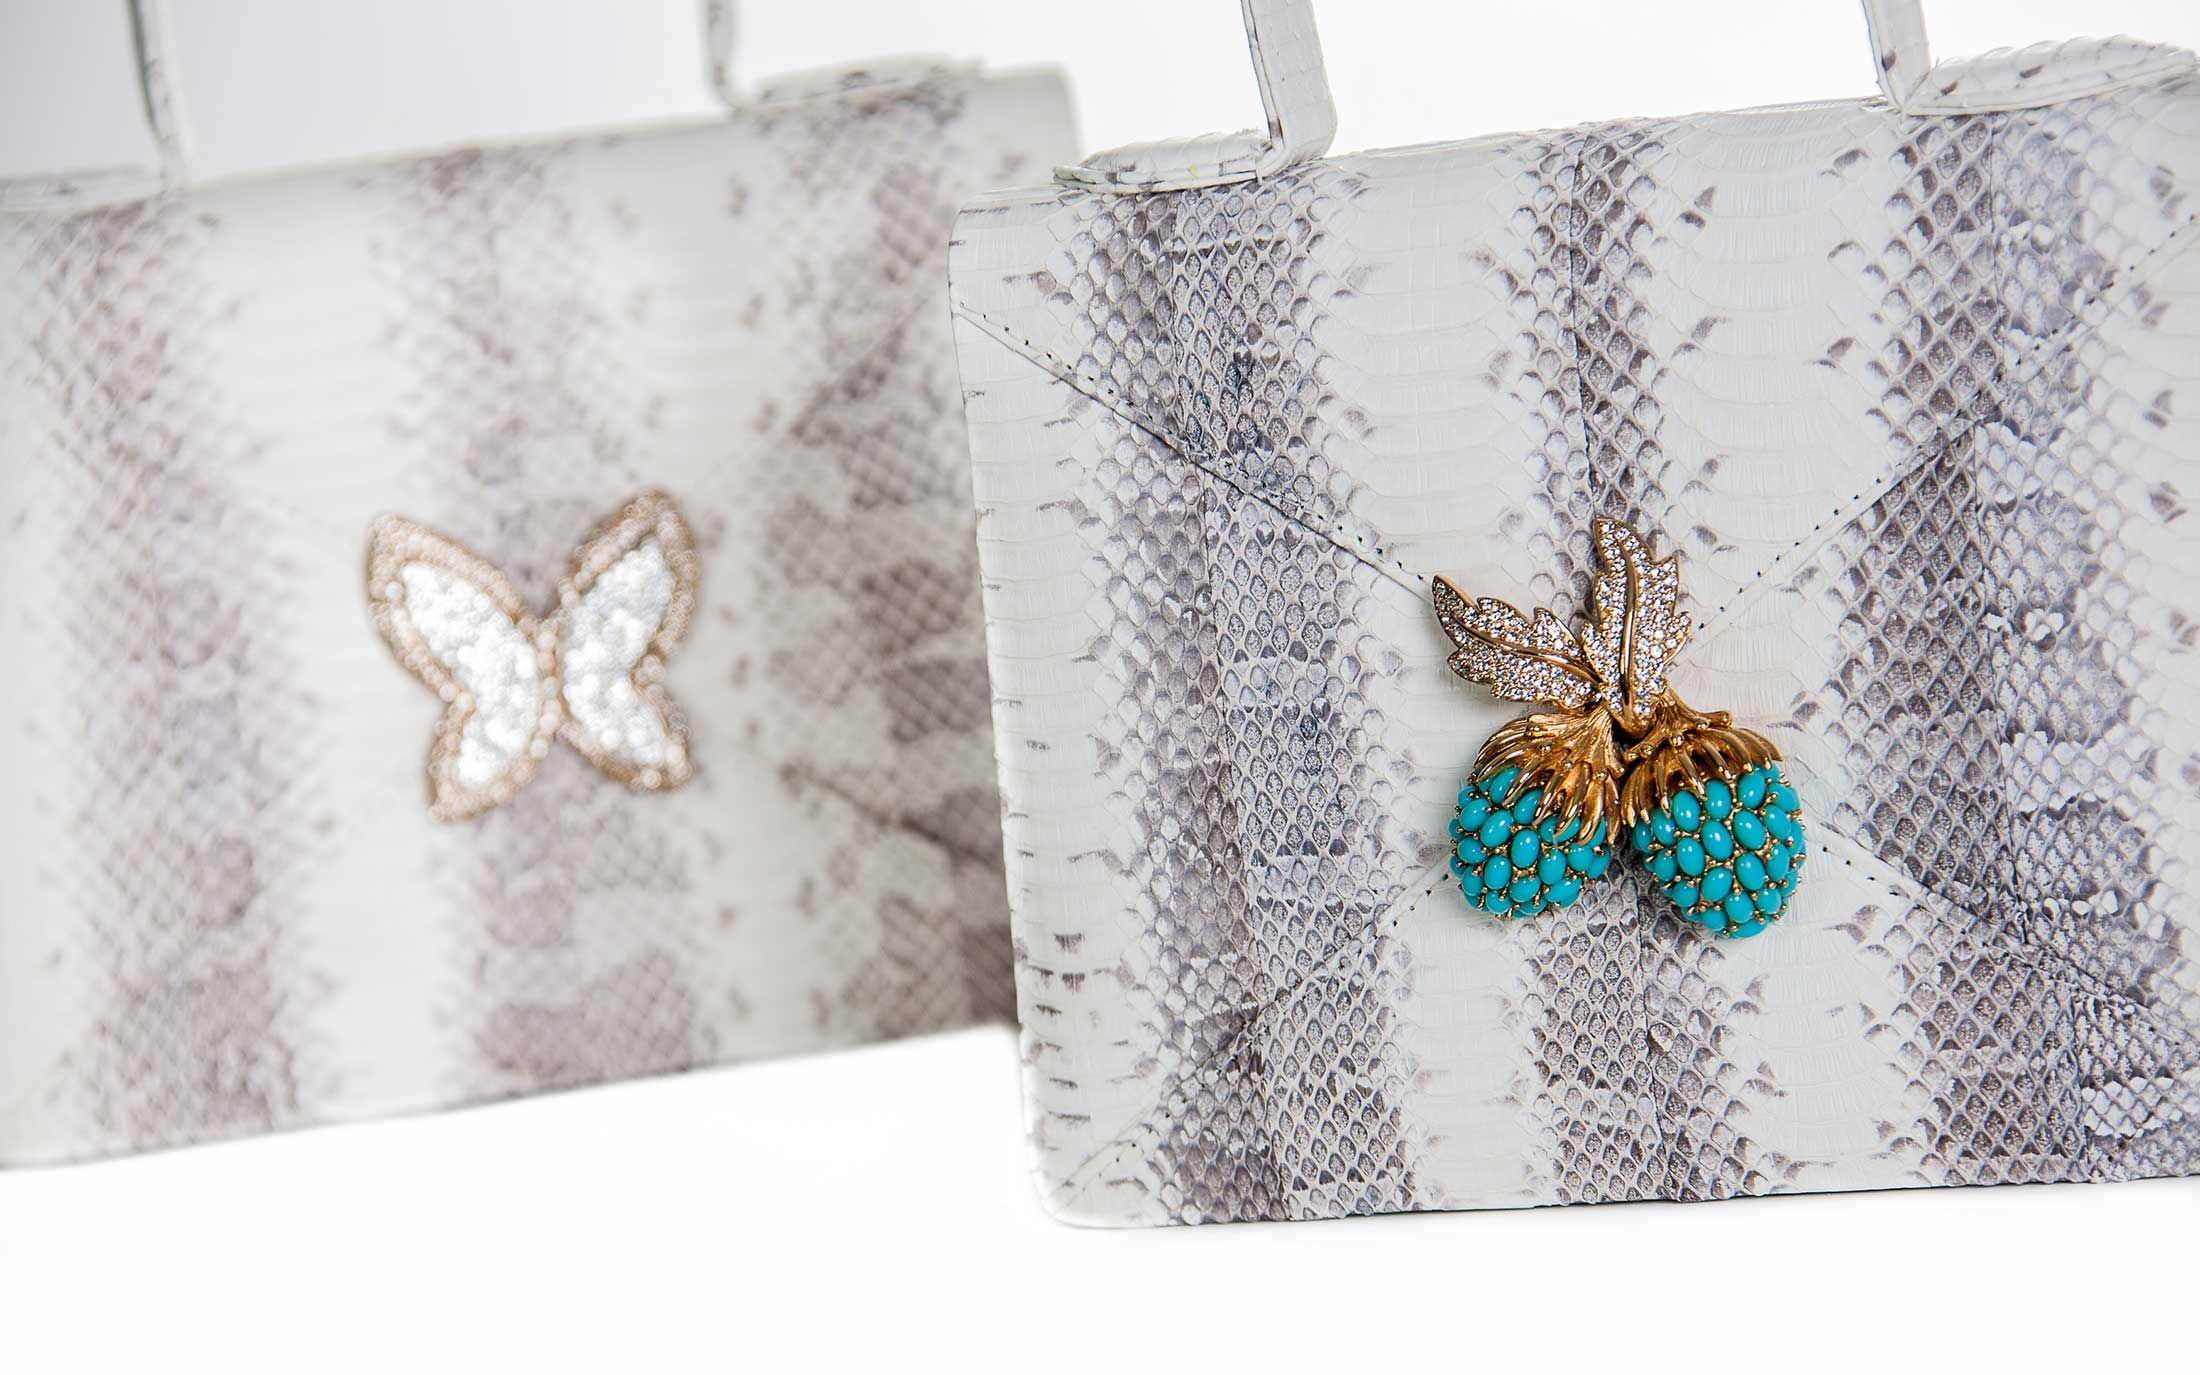 Ethically Sourced Exotic Purses